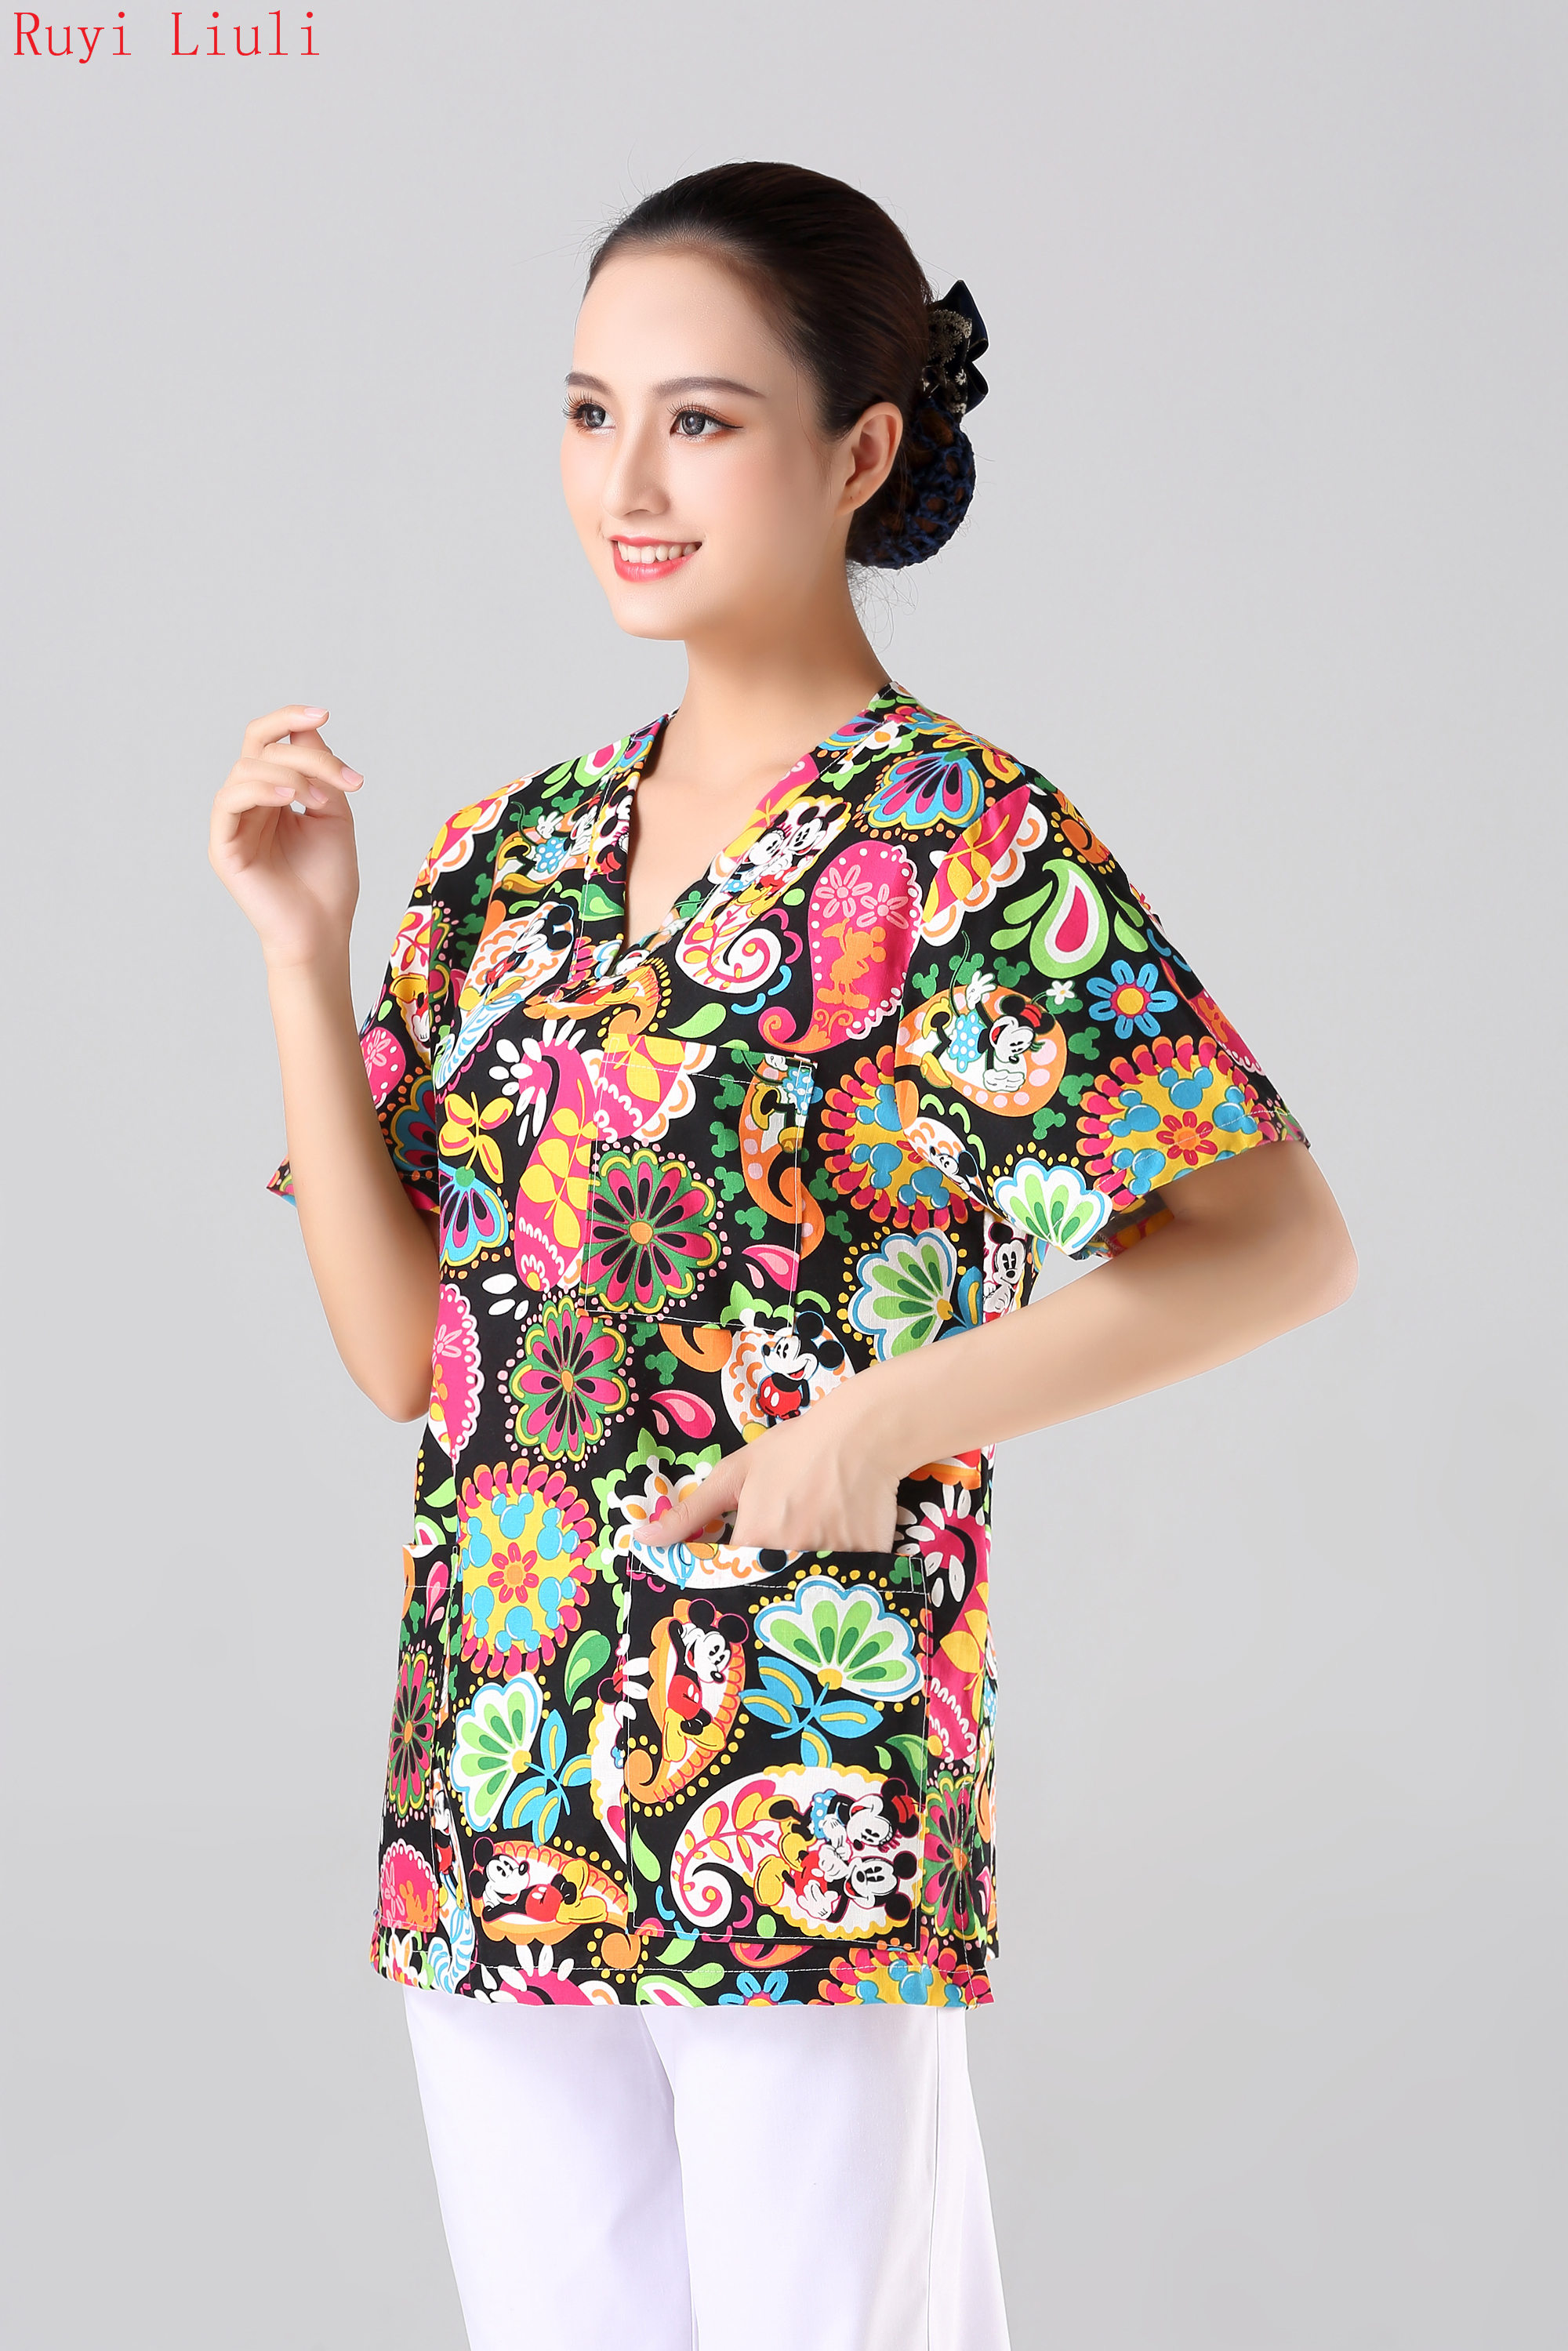 Operating gown surgical hand washing suit nurse doctor dental cosmetology oral pet hospital uniform Cotton printed